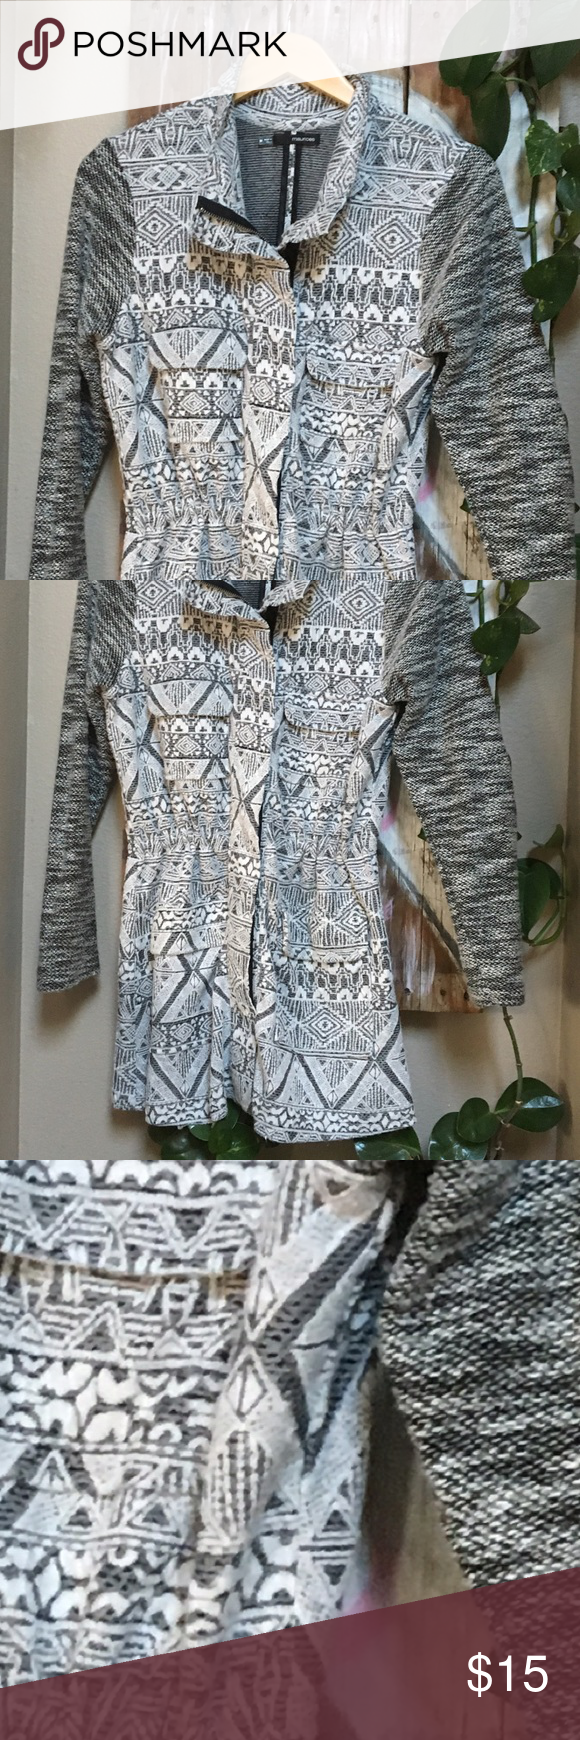 Maurice's light anorak type jacket Gray and white native style light layering jacket.. worn a couple of times and hung to dry. Does have some balling... very cute and light! Maurices Jackets & Coats Blazers